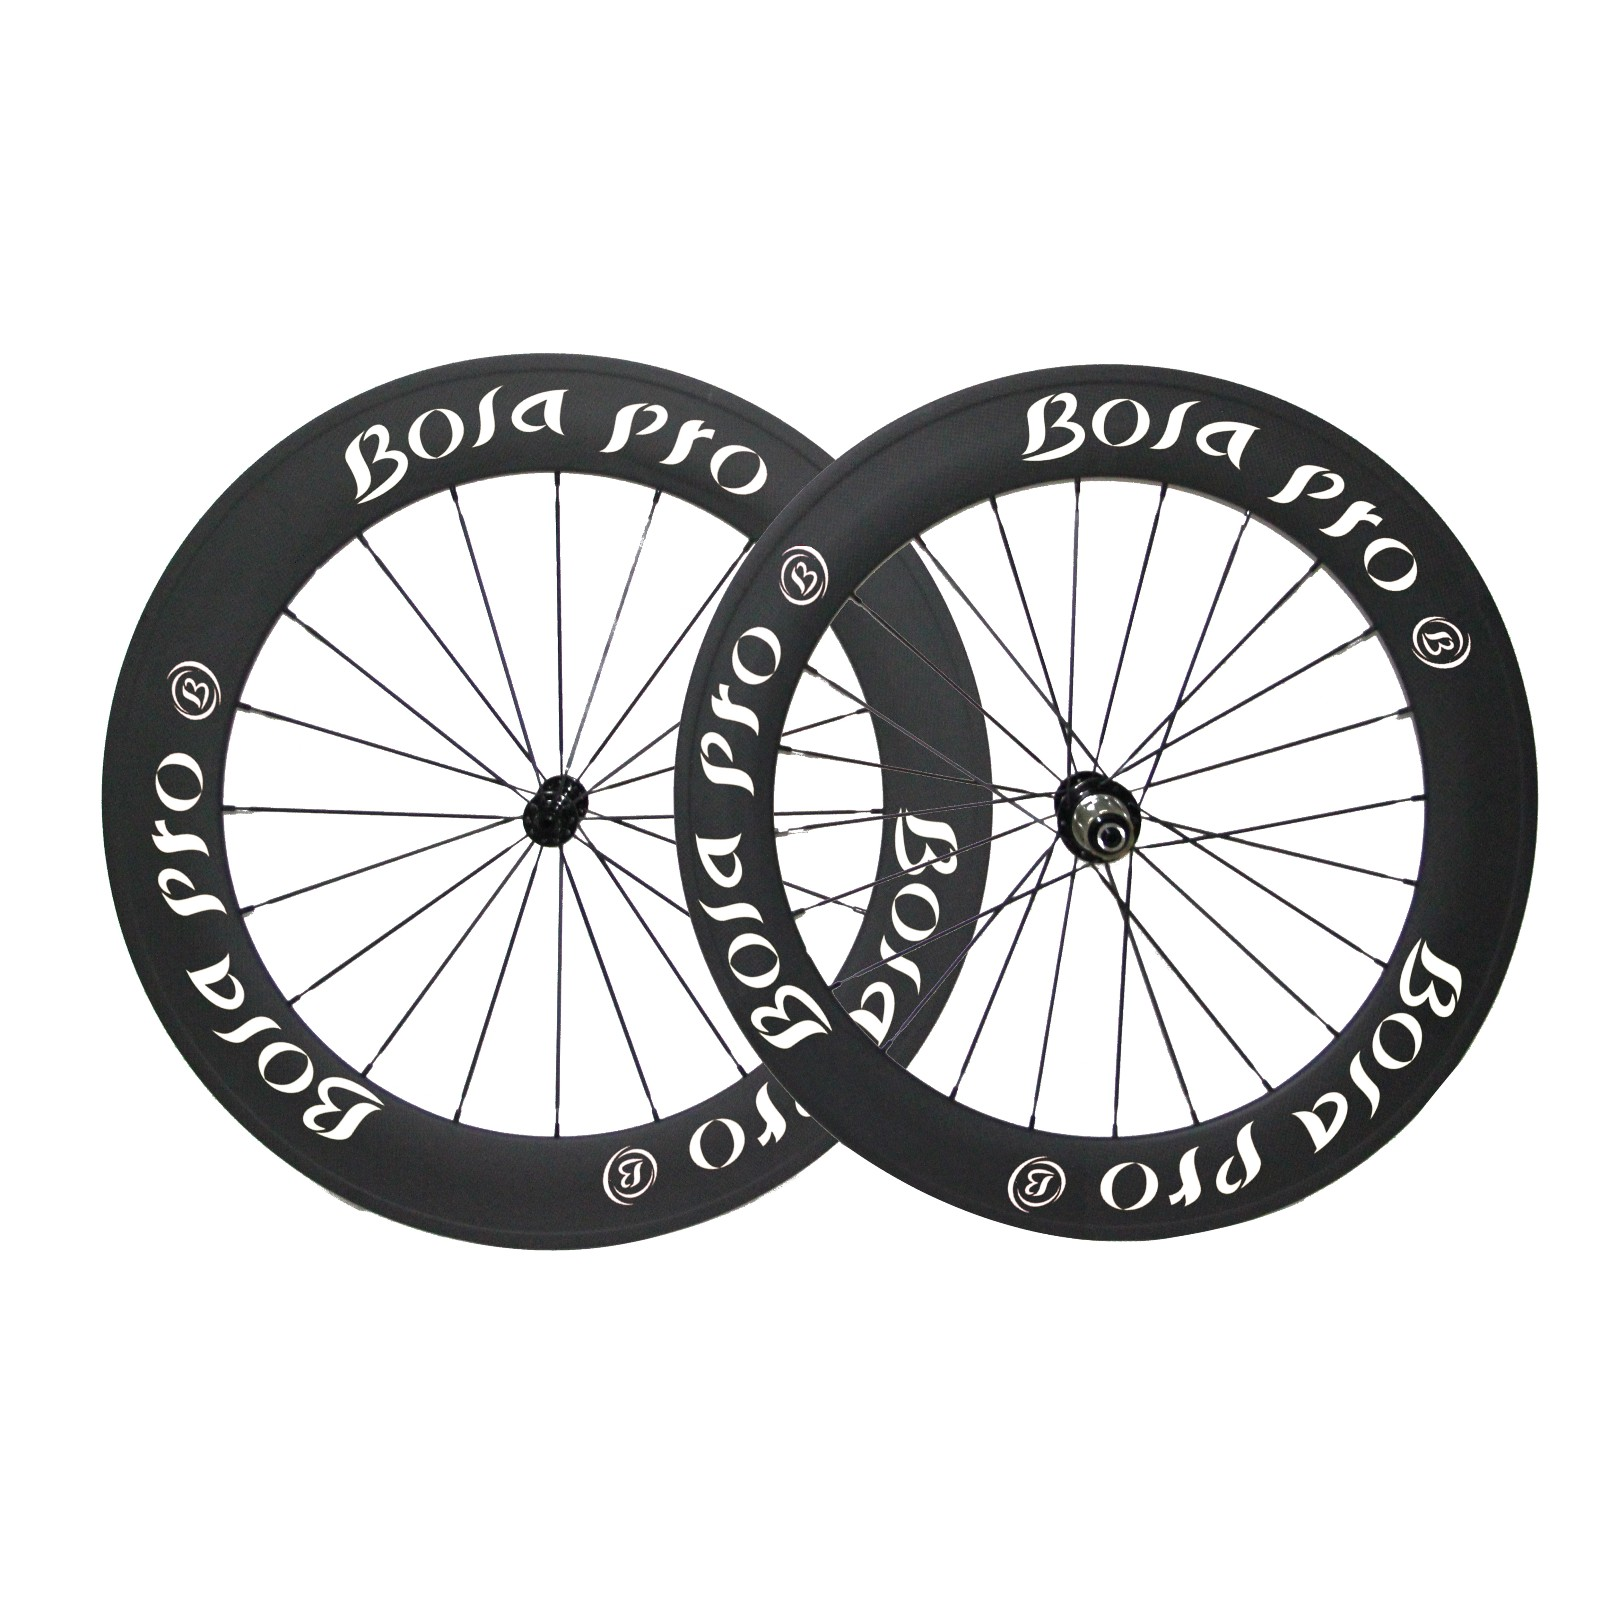 700C 60mm carbon wheelset with Novatec A271/F372 hub